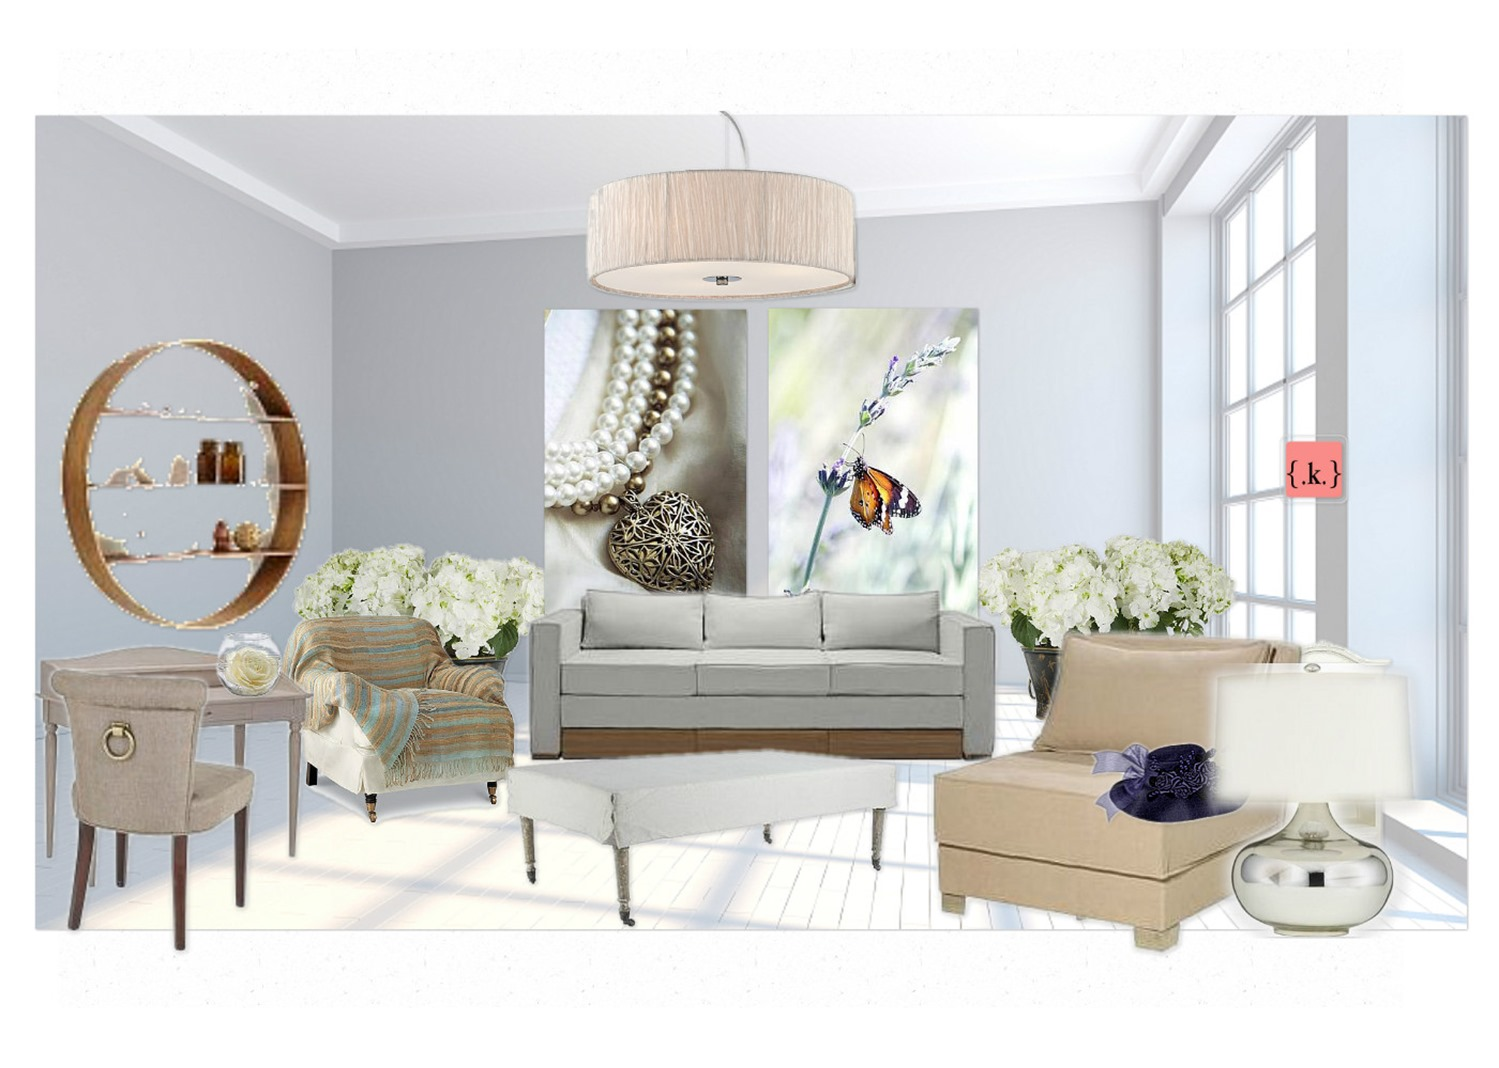 design board: modern living room -konstadina nastou- {.k.} blog, Κωνσταντίνα Νάστου